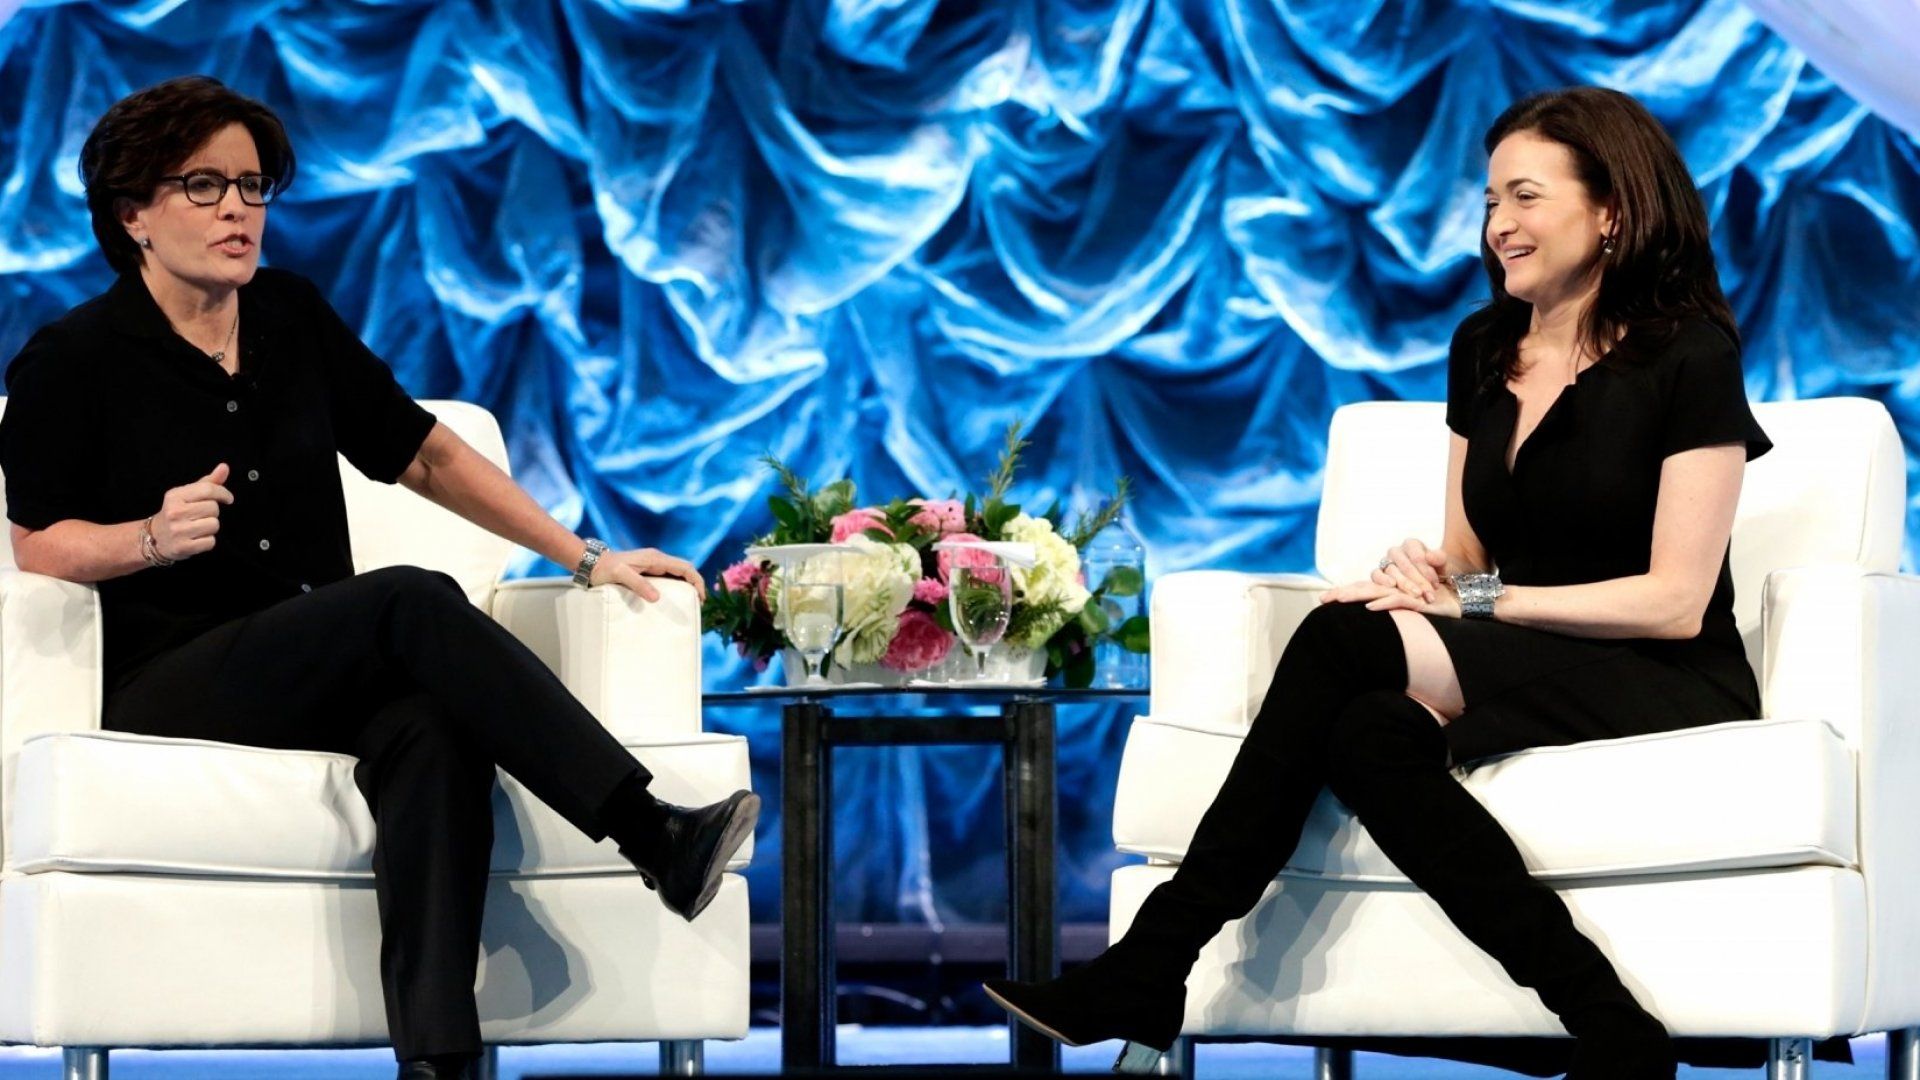 Facebook COO Sheryl Sandberg speaks with journalist Kara Swisher onstage at Makers Conference in San Francisco on February 7, 2017.